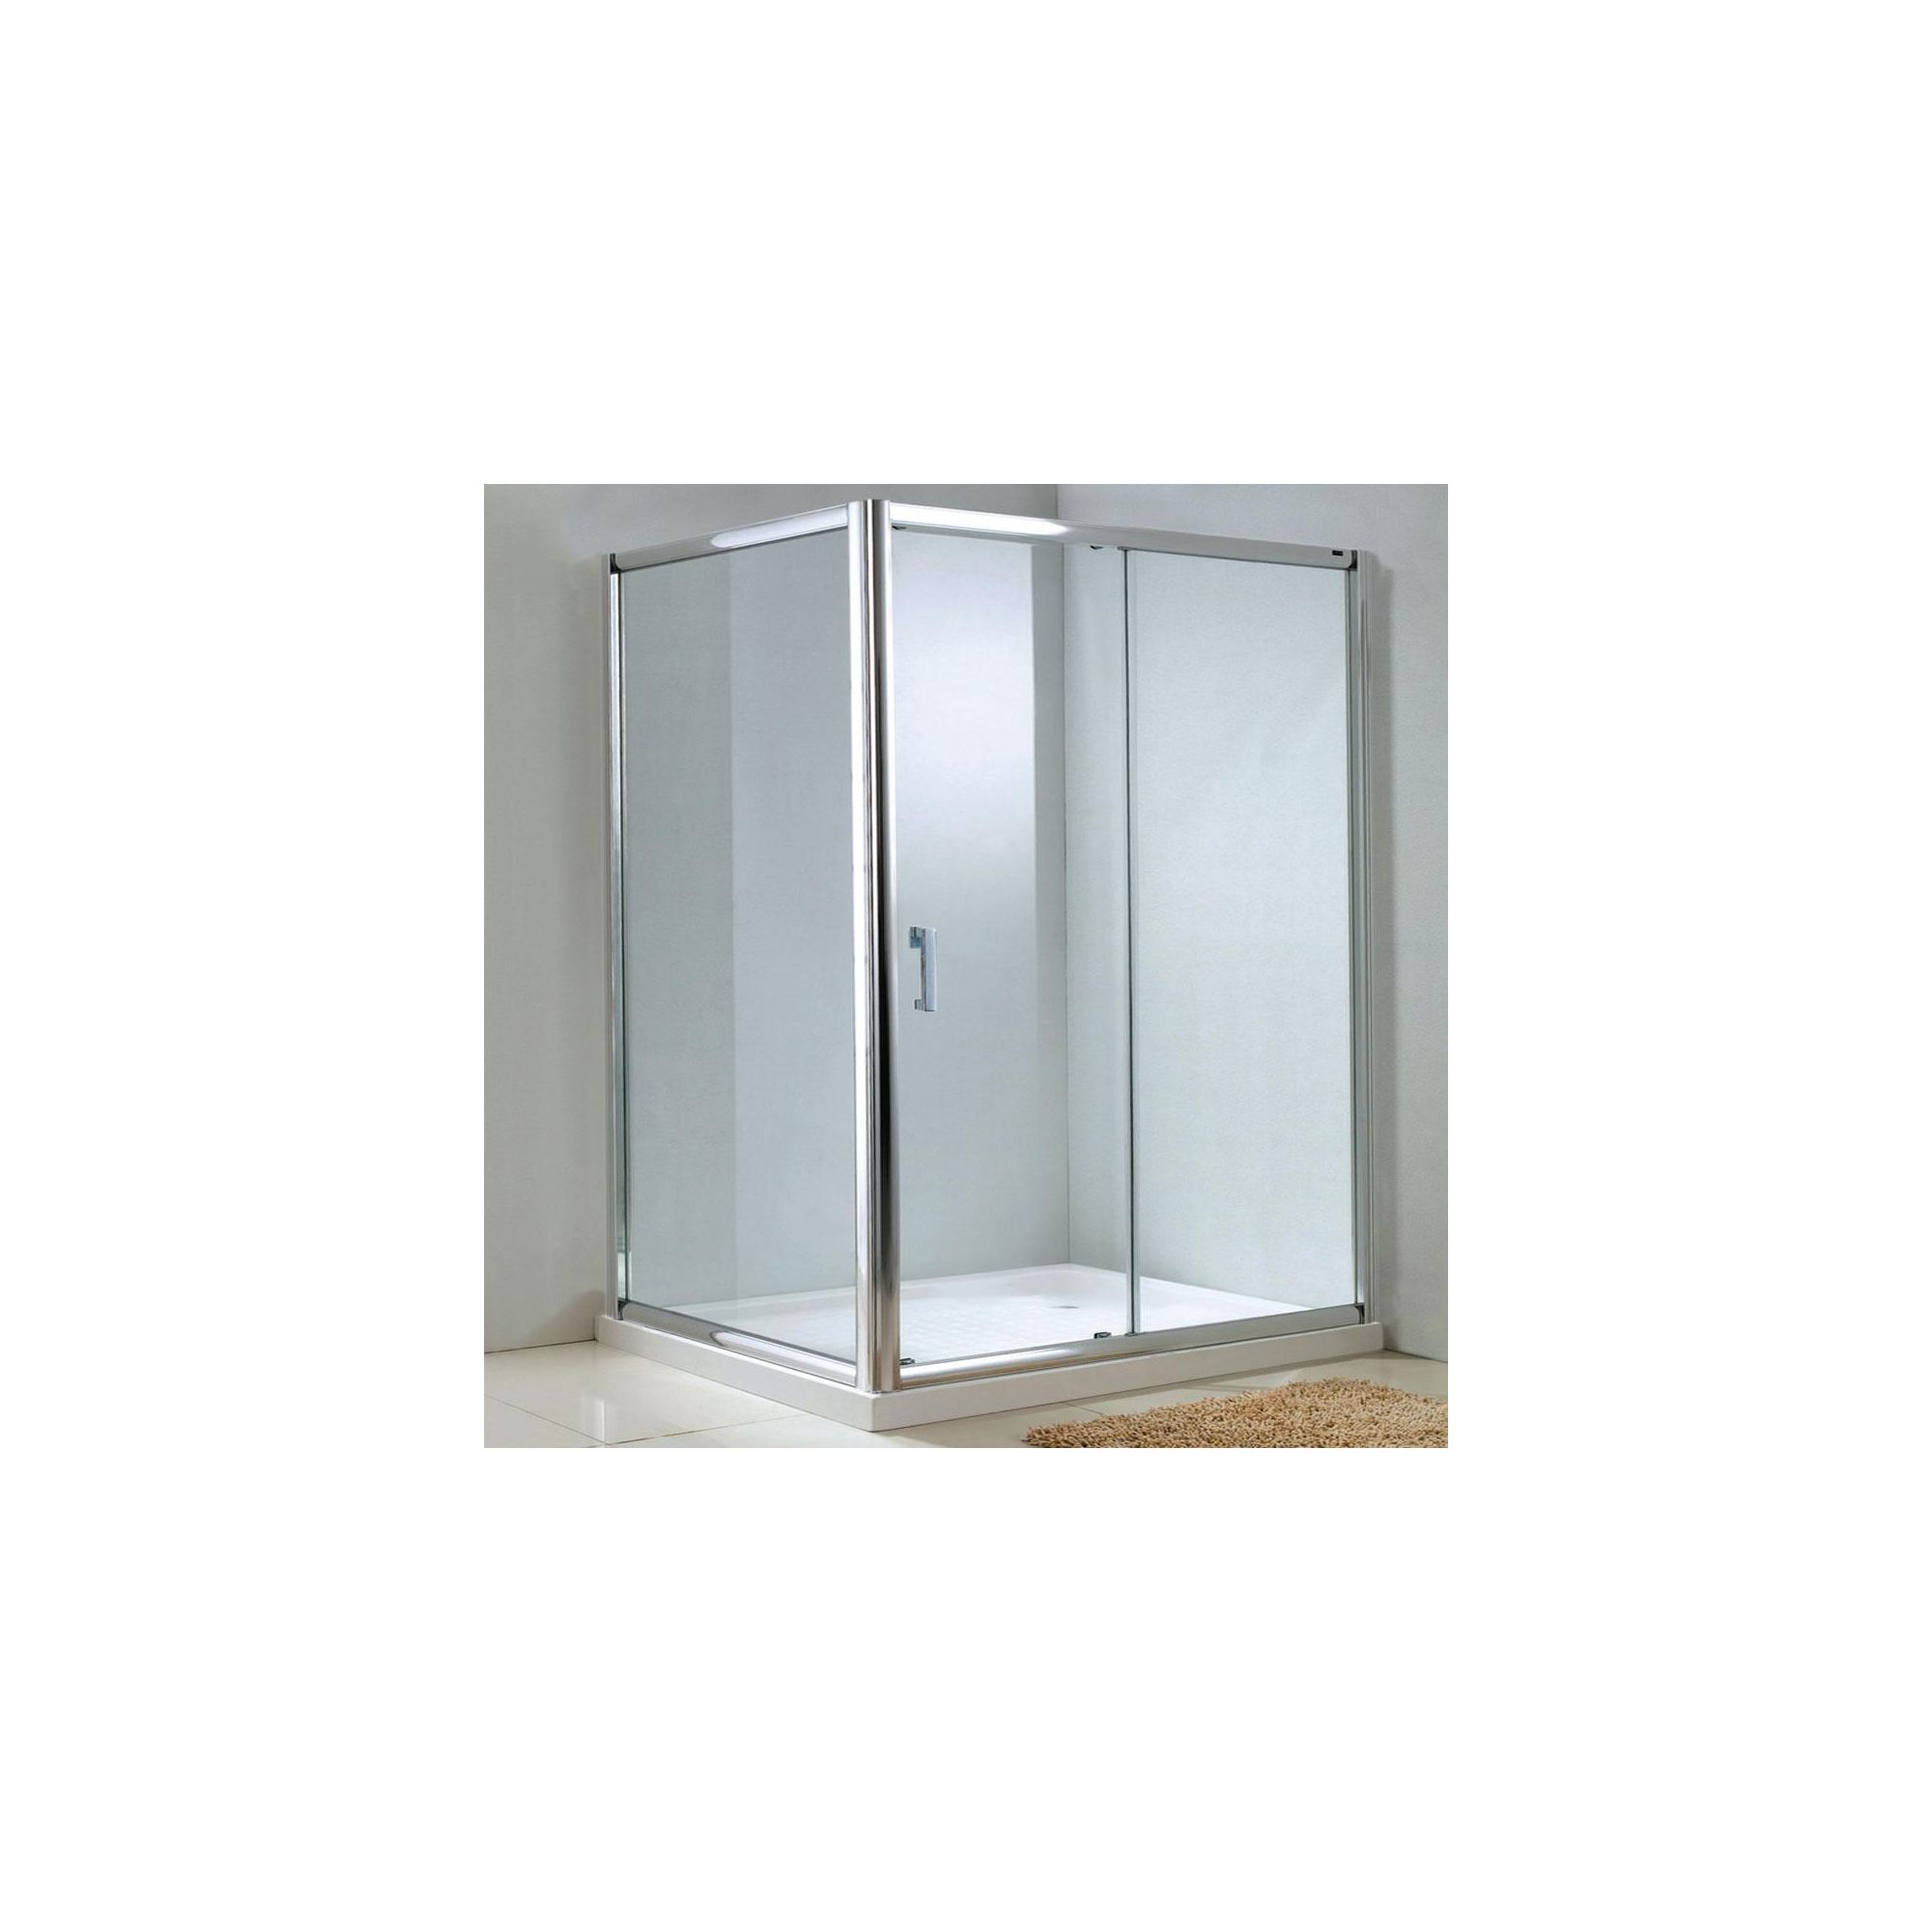 Duchy Style Single Sliding Door Shower Enclosure, 1100mm x 700mm, 6mm Glass, Low Profile Tray at Tesco Direct